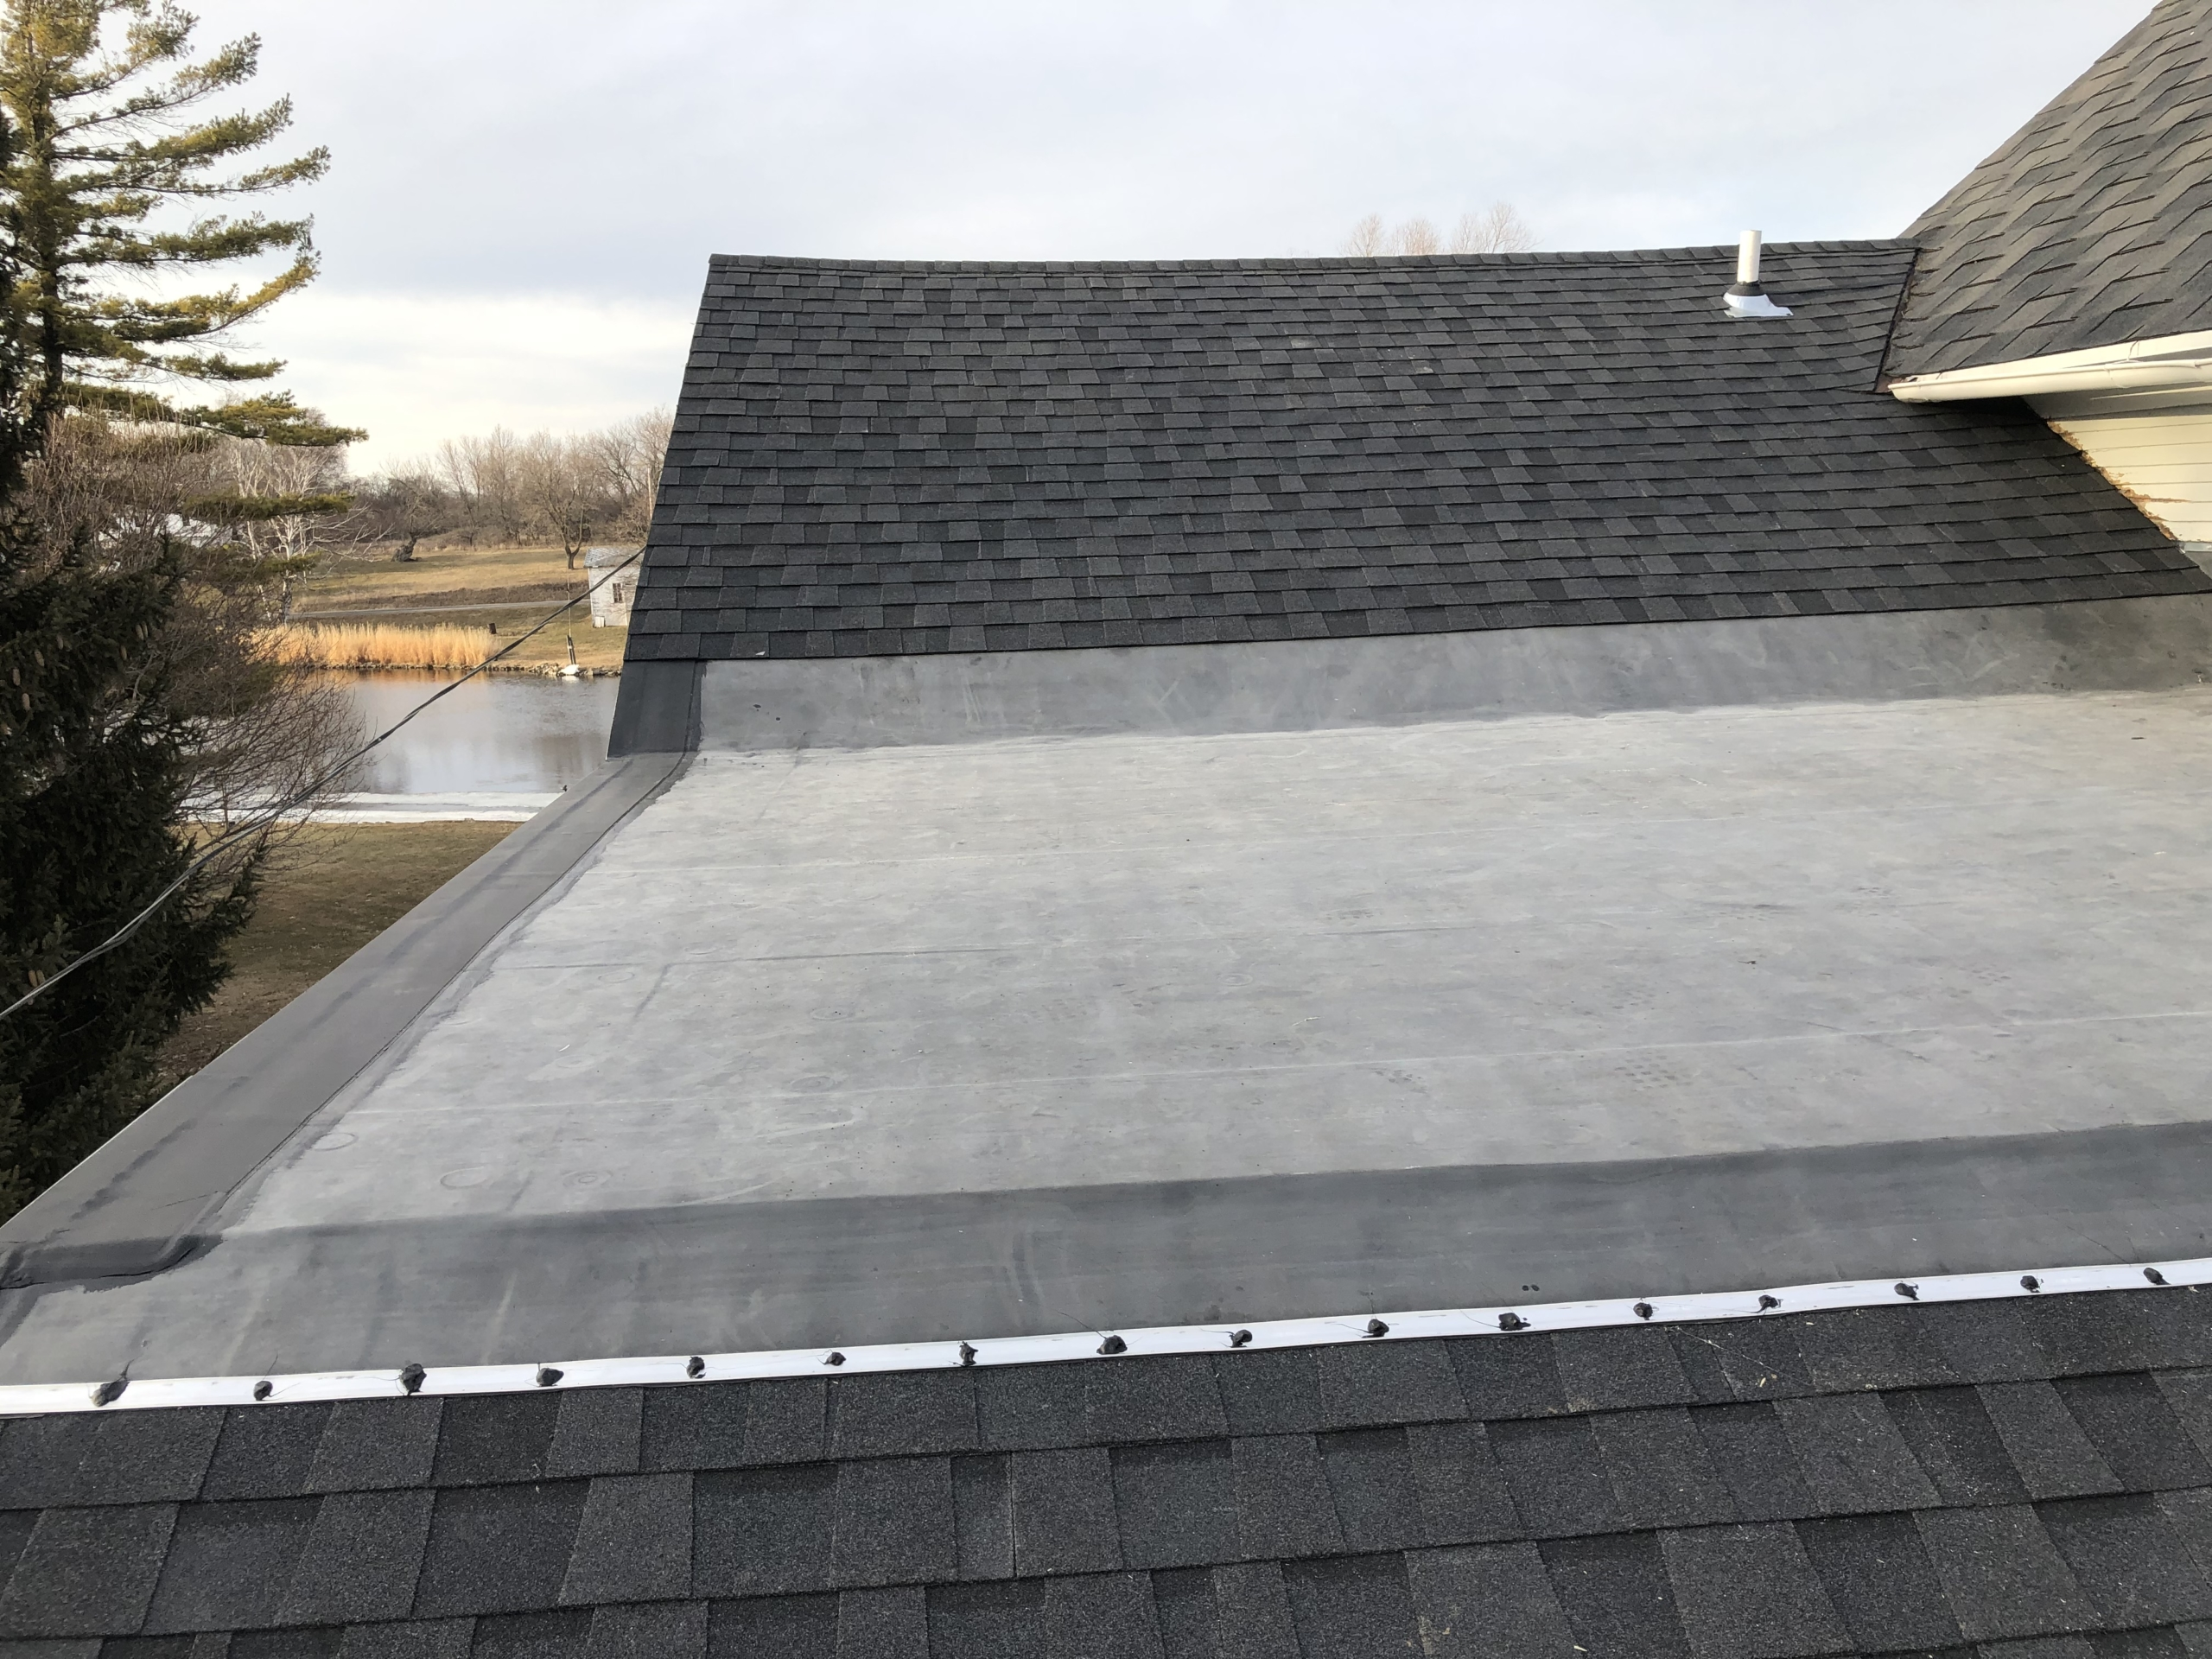 Wisconsin Roofing LLC | Kiel WI | CertainTeed Shingle Moire Black | 60 Mil EPDM | Johns Mansville | Rubber | Re-roof